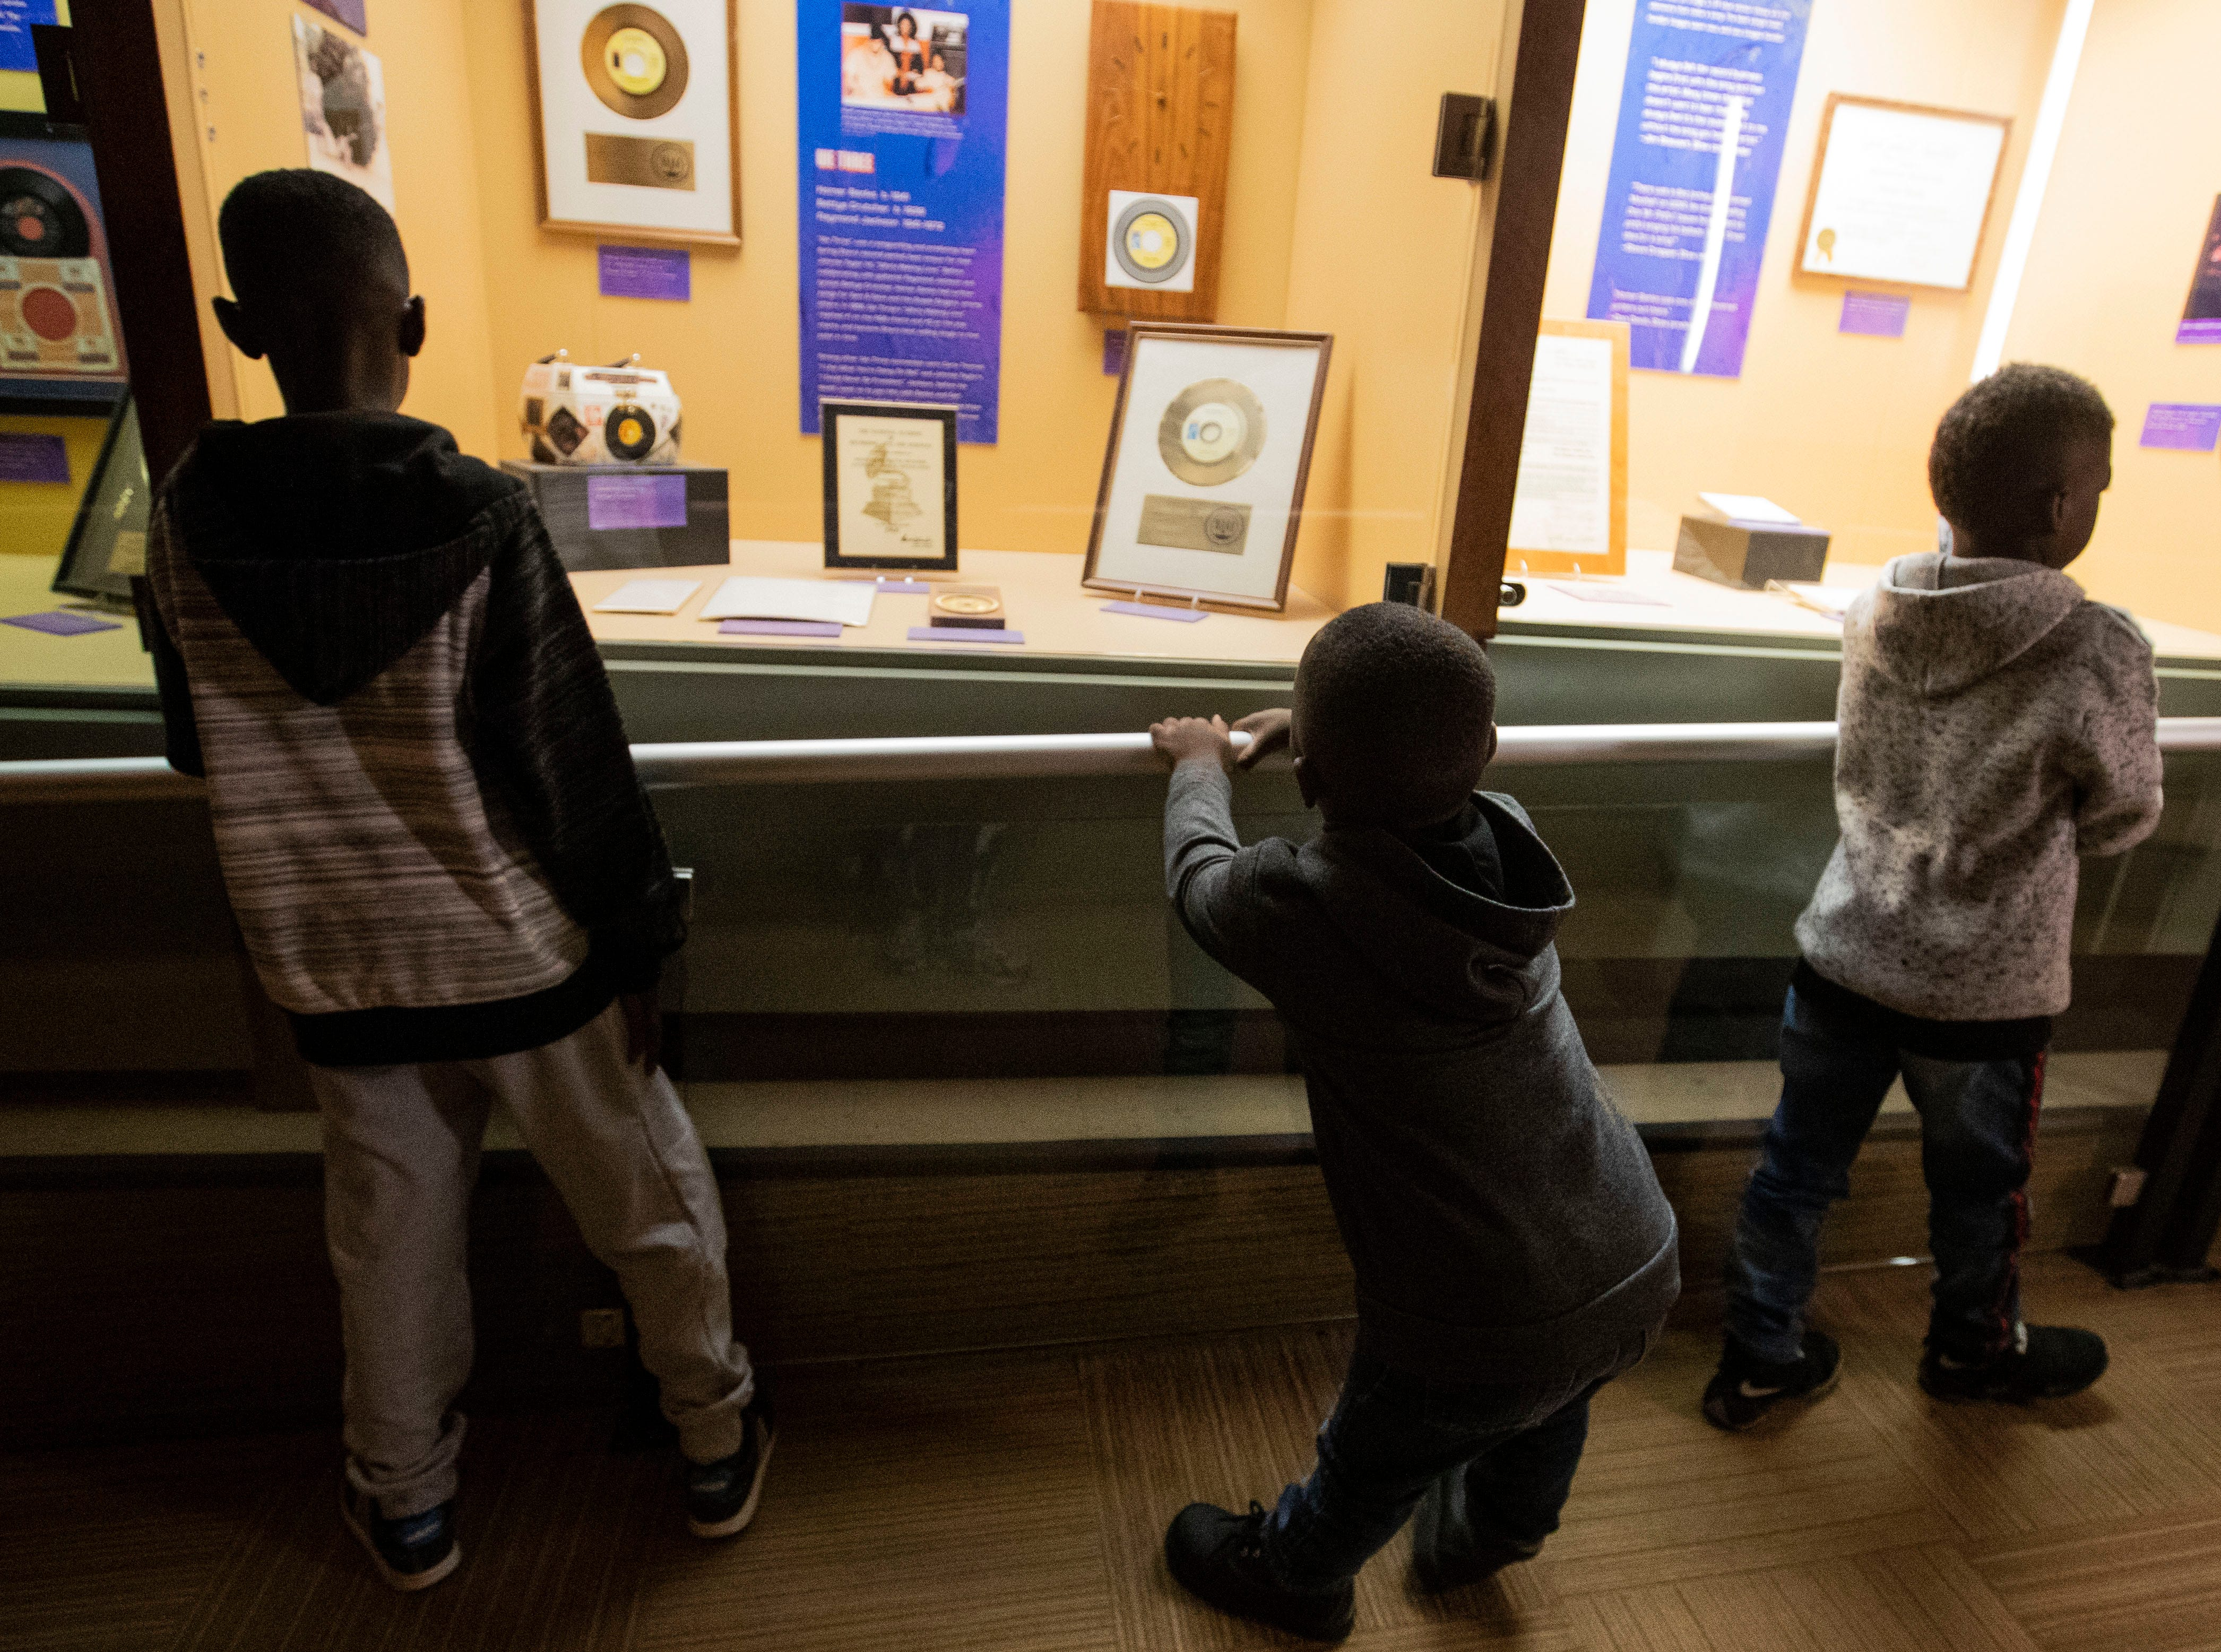 Brothers Jayden Jamar, Christian Hayes and Mason Hall view exhibits at the Stax Museum of American Soul Music during the 2018 Soulsville USA Festival Saturday October 20, 2018.